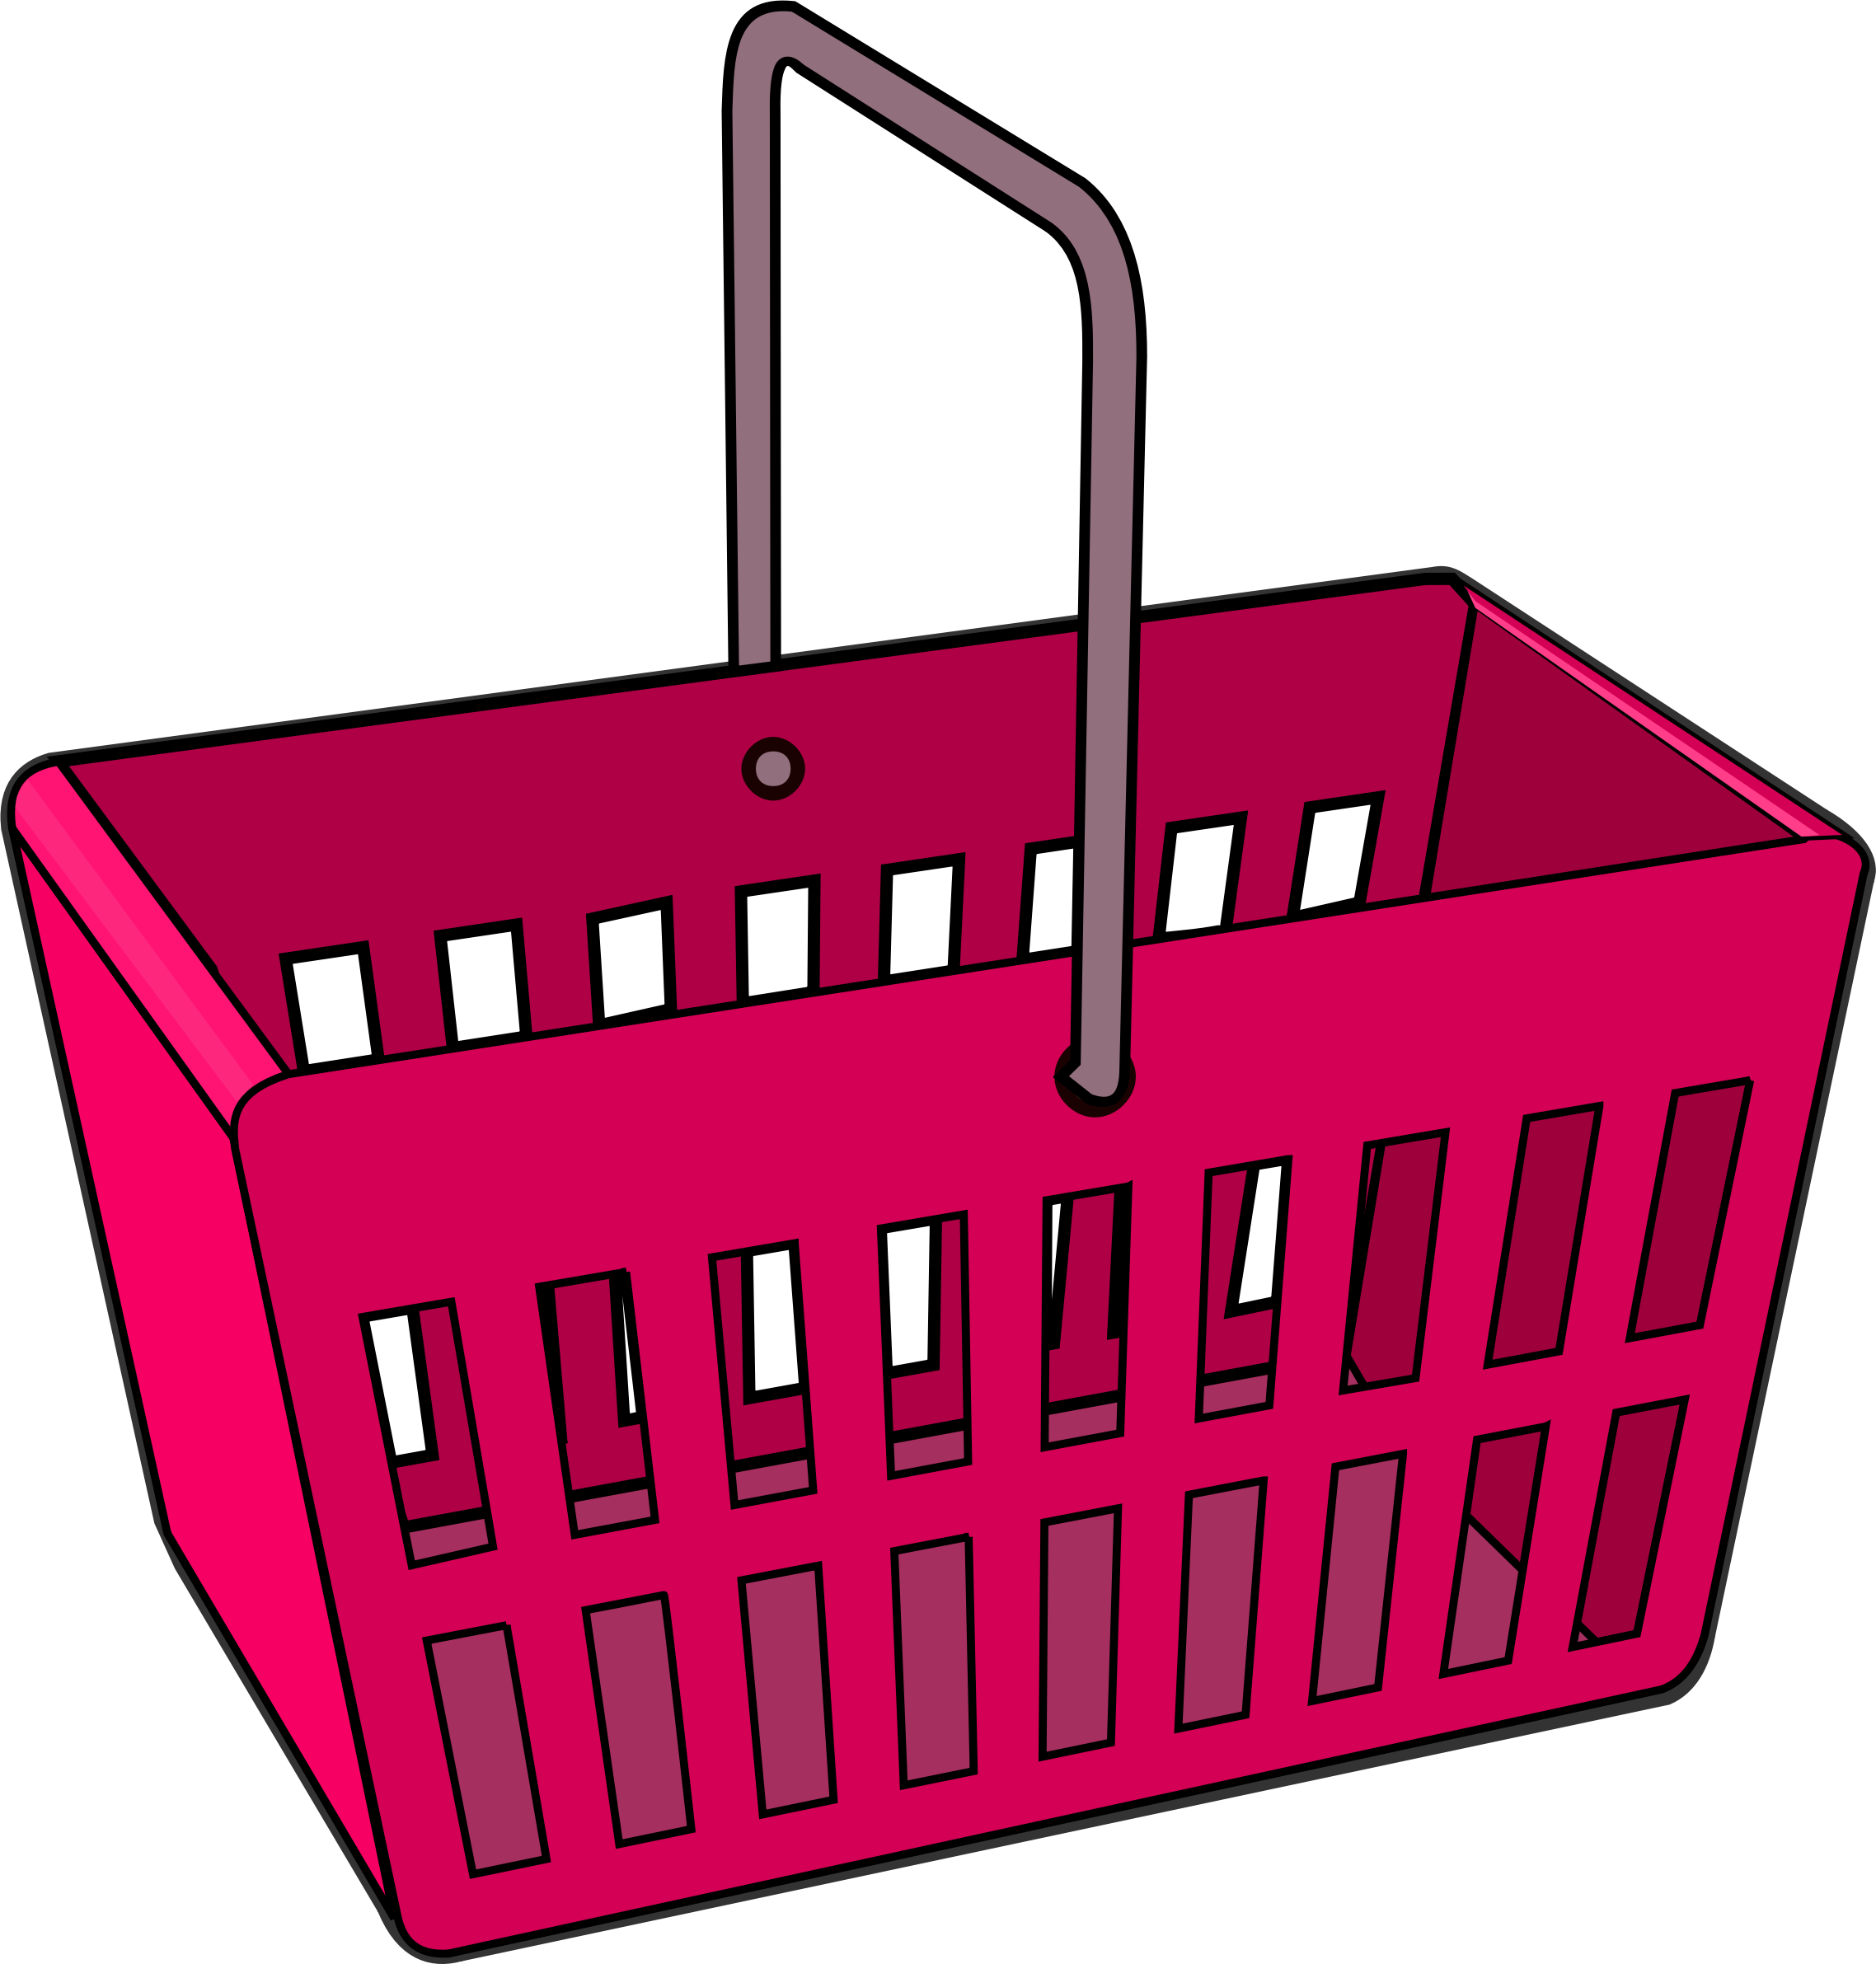 Shopping Basket by SunKing2